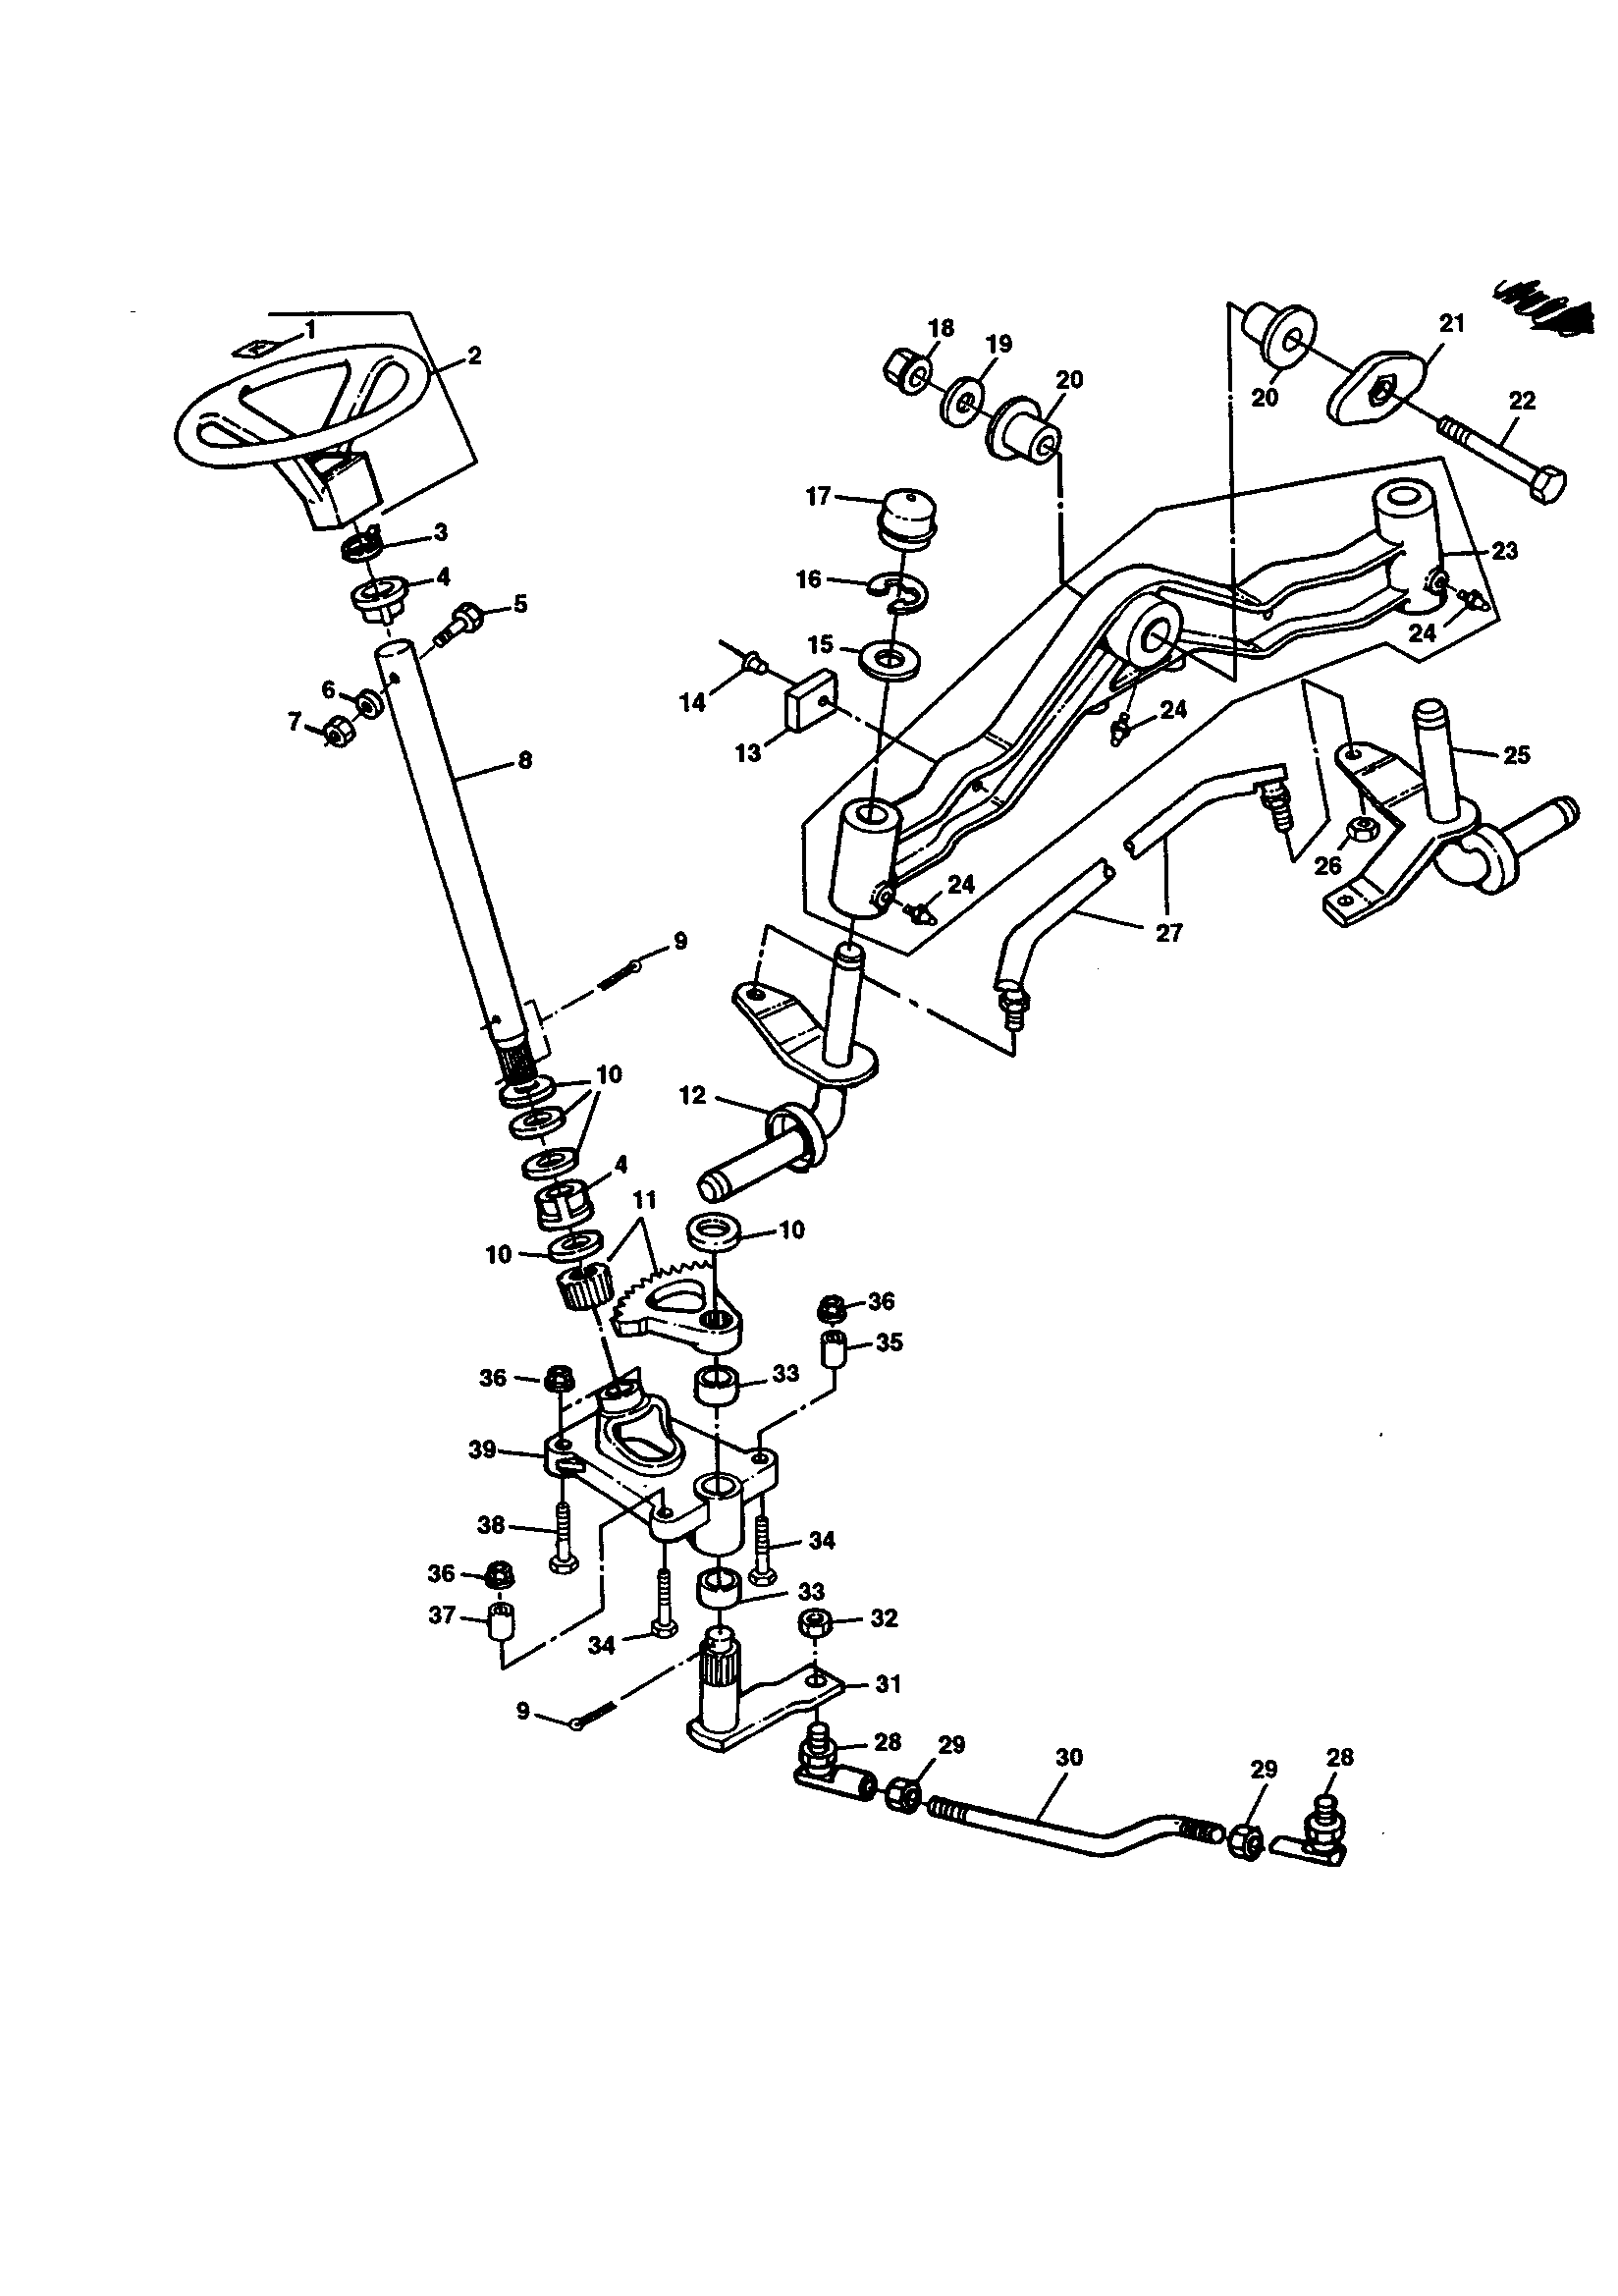 hight resolution of scotts s2048 wiring diagram